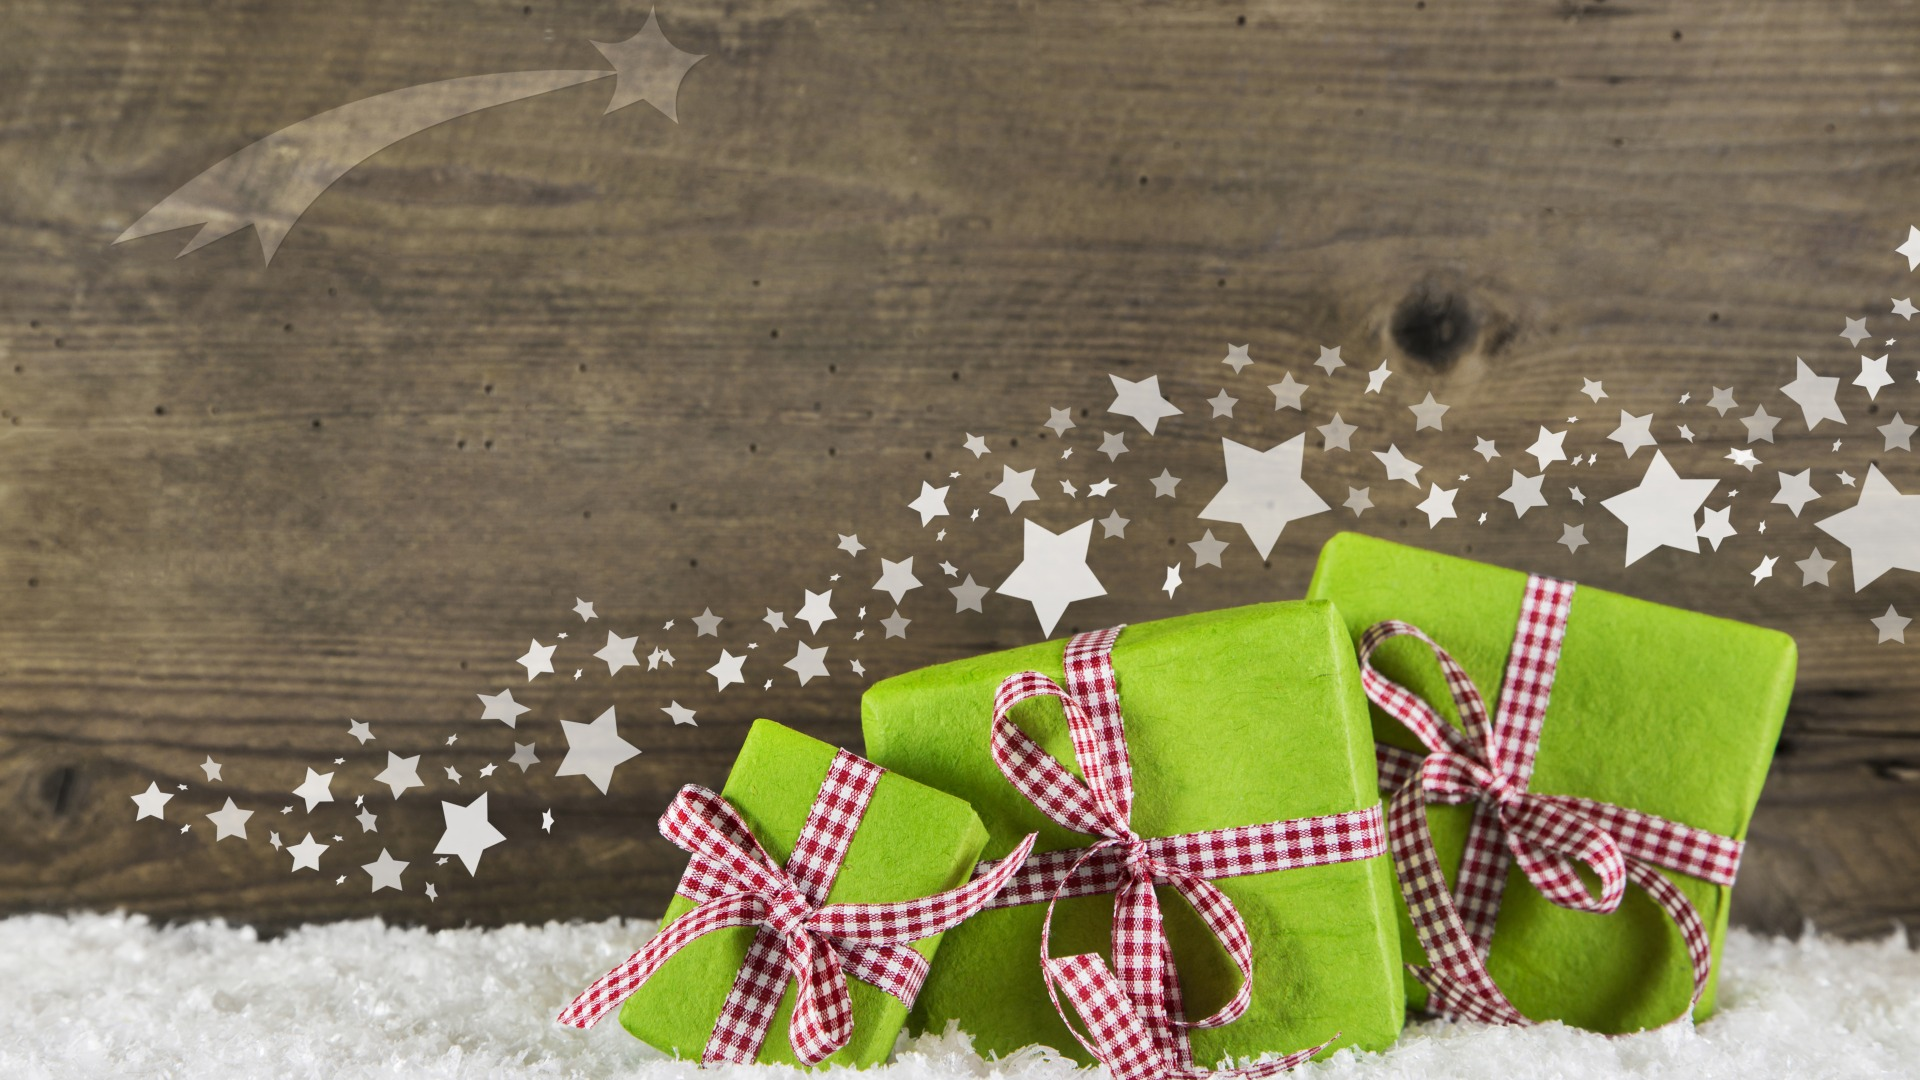 Download-New-Year-Christmas-gifts-Christmas-wood-snow-decoration-gifts-section-wallpaper-wp3804818